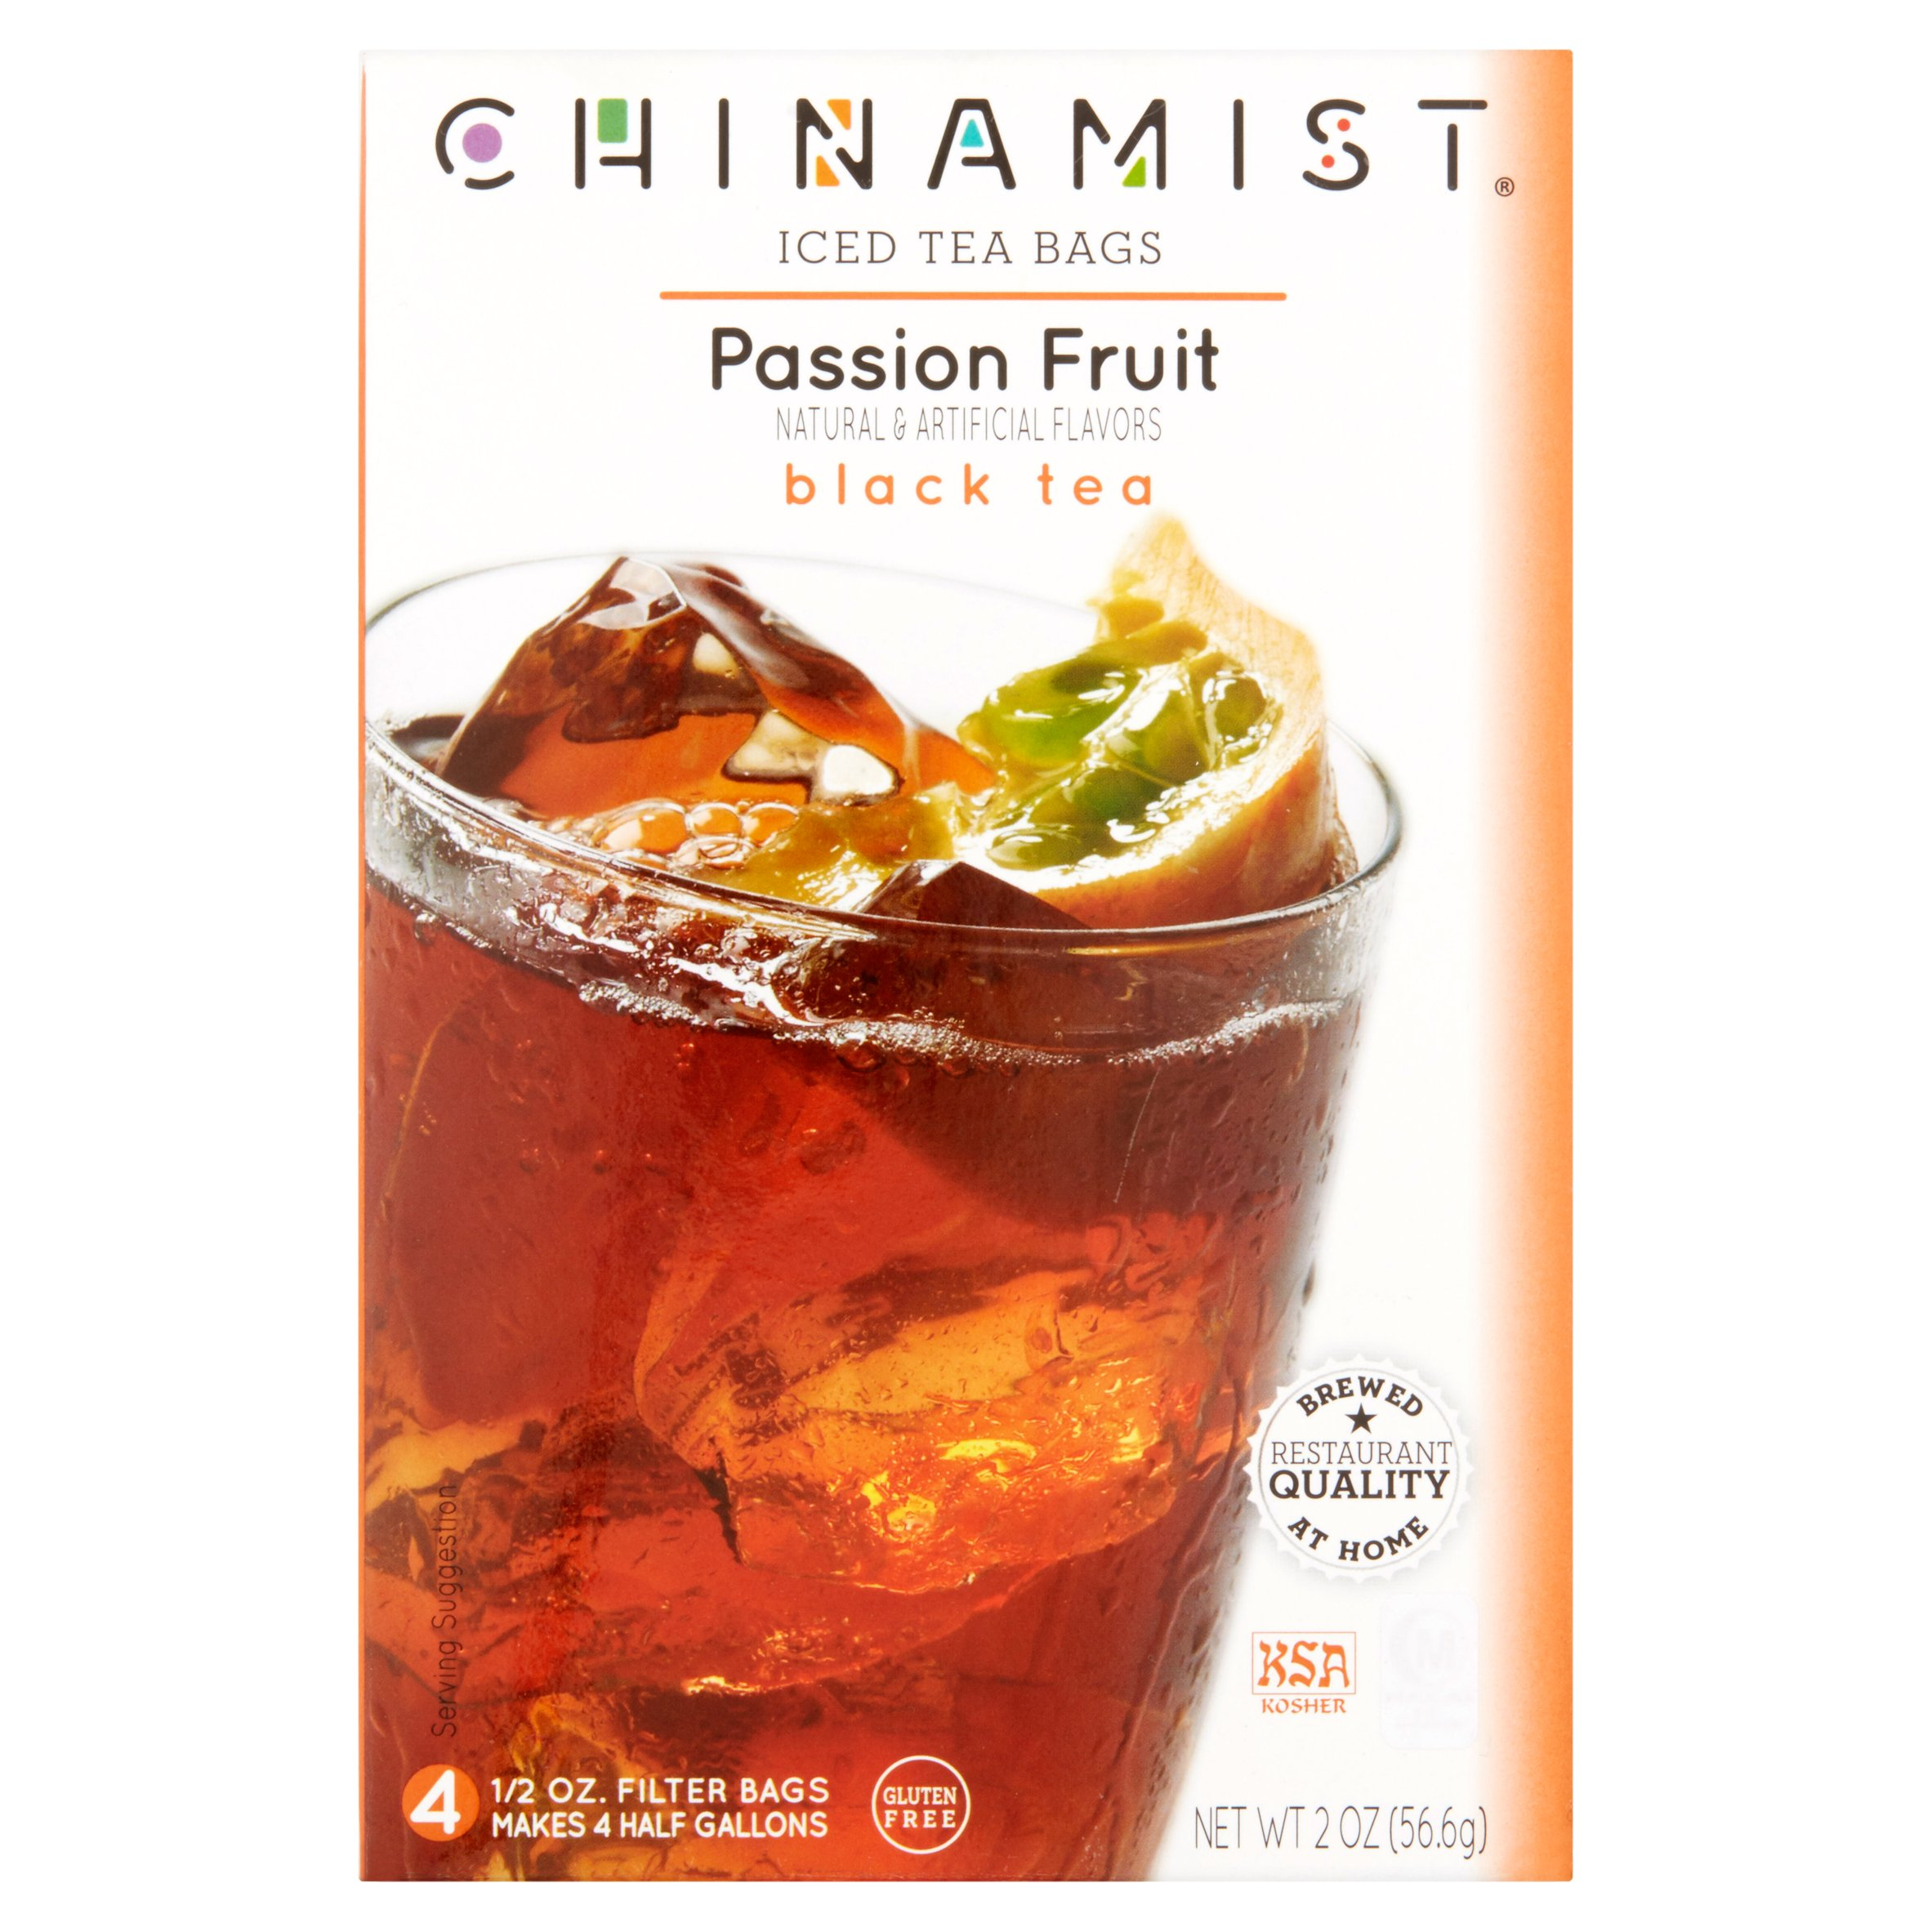 China Mist Passion Fruit Iced Black Tea, .5 oz, 4 count